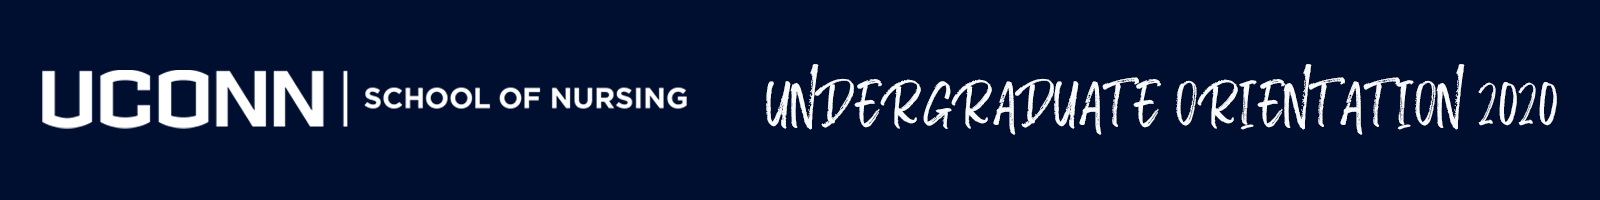 "Navy blue banner with the UConn School of Nursing Logo and the text ""Undergraduate Orientation 2020"""